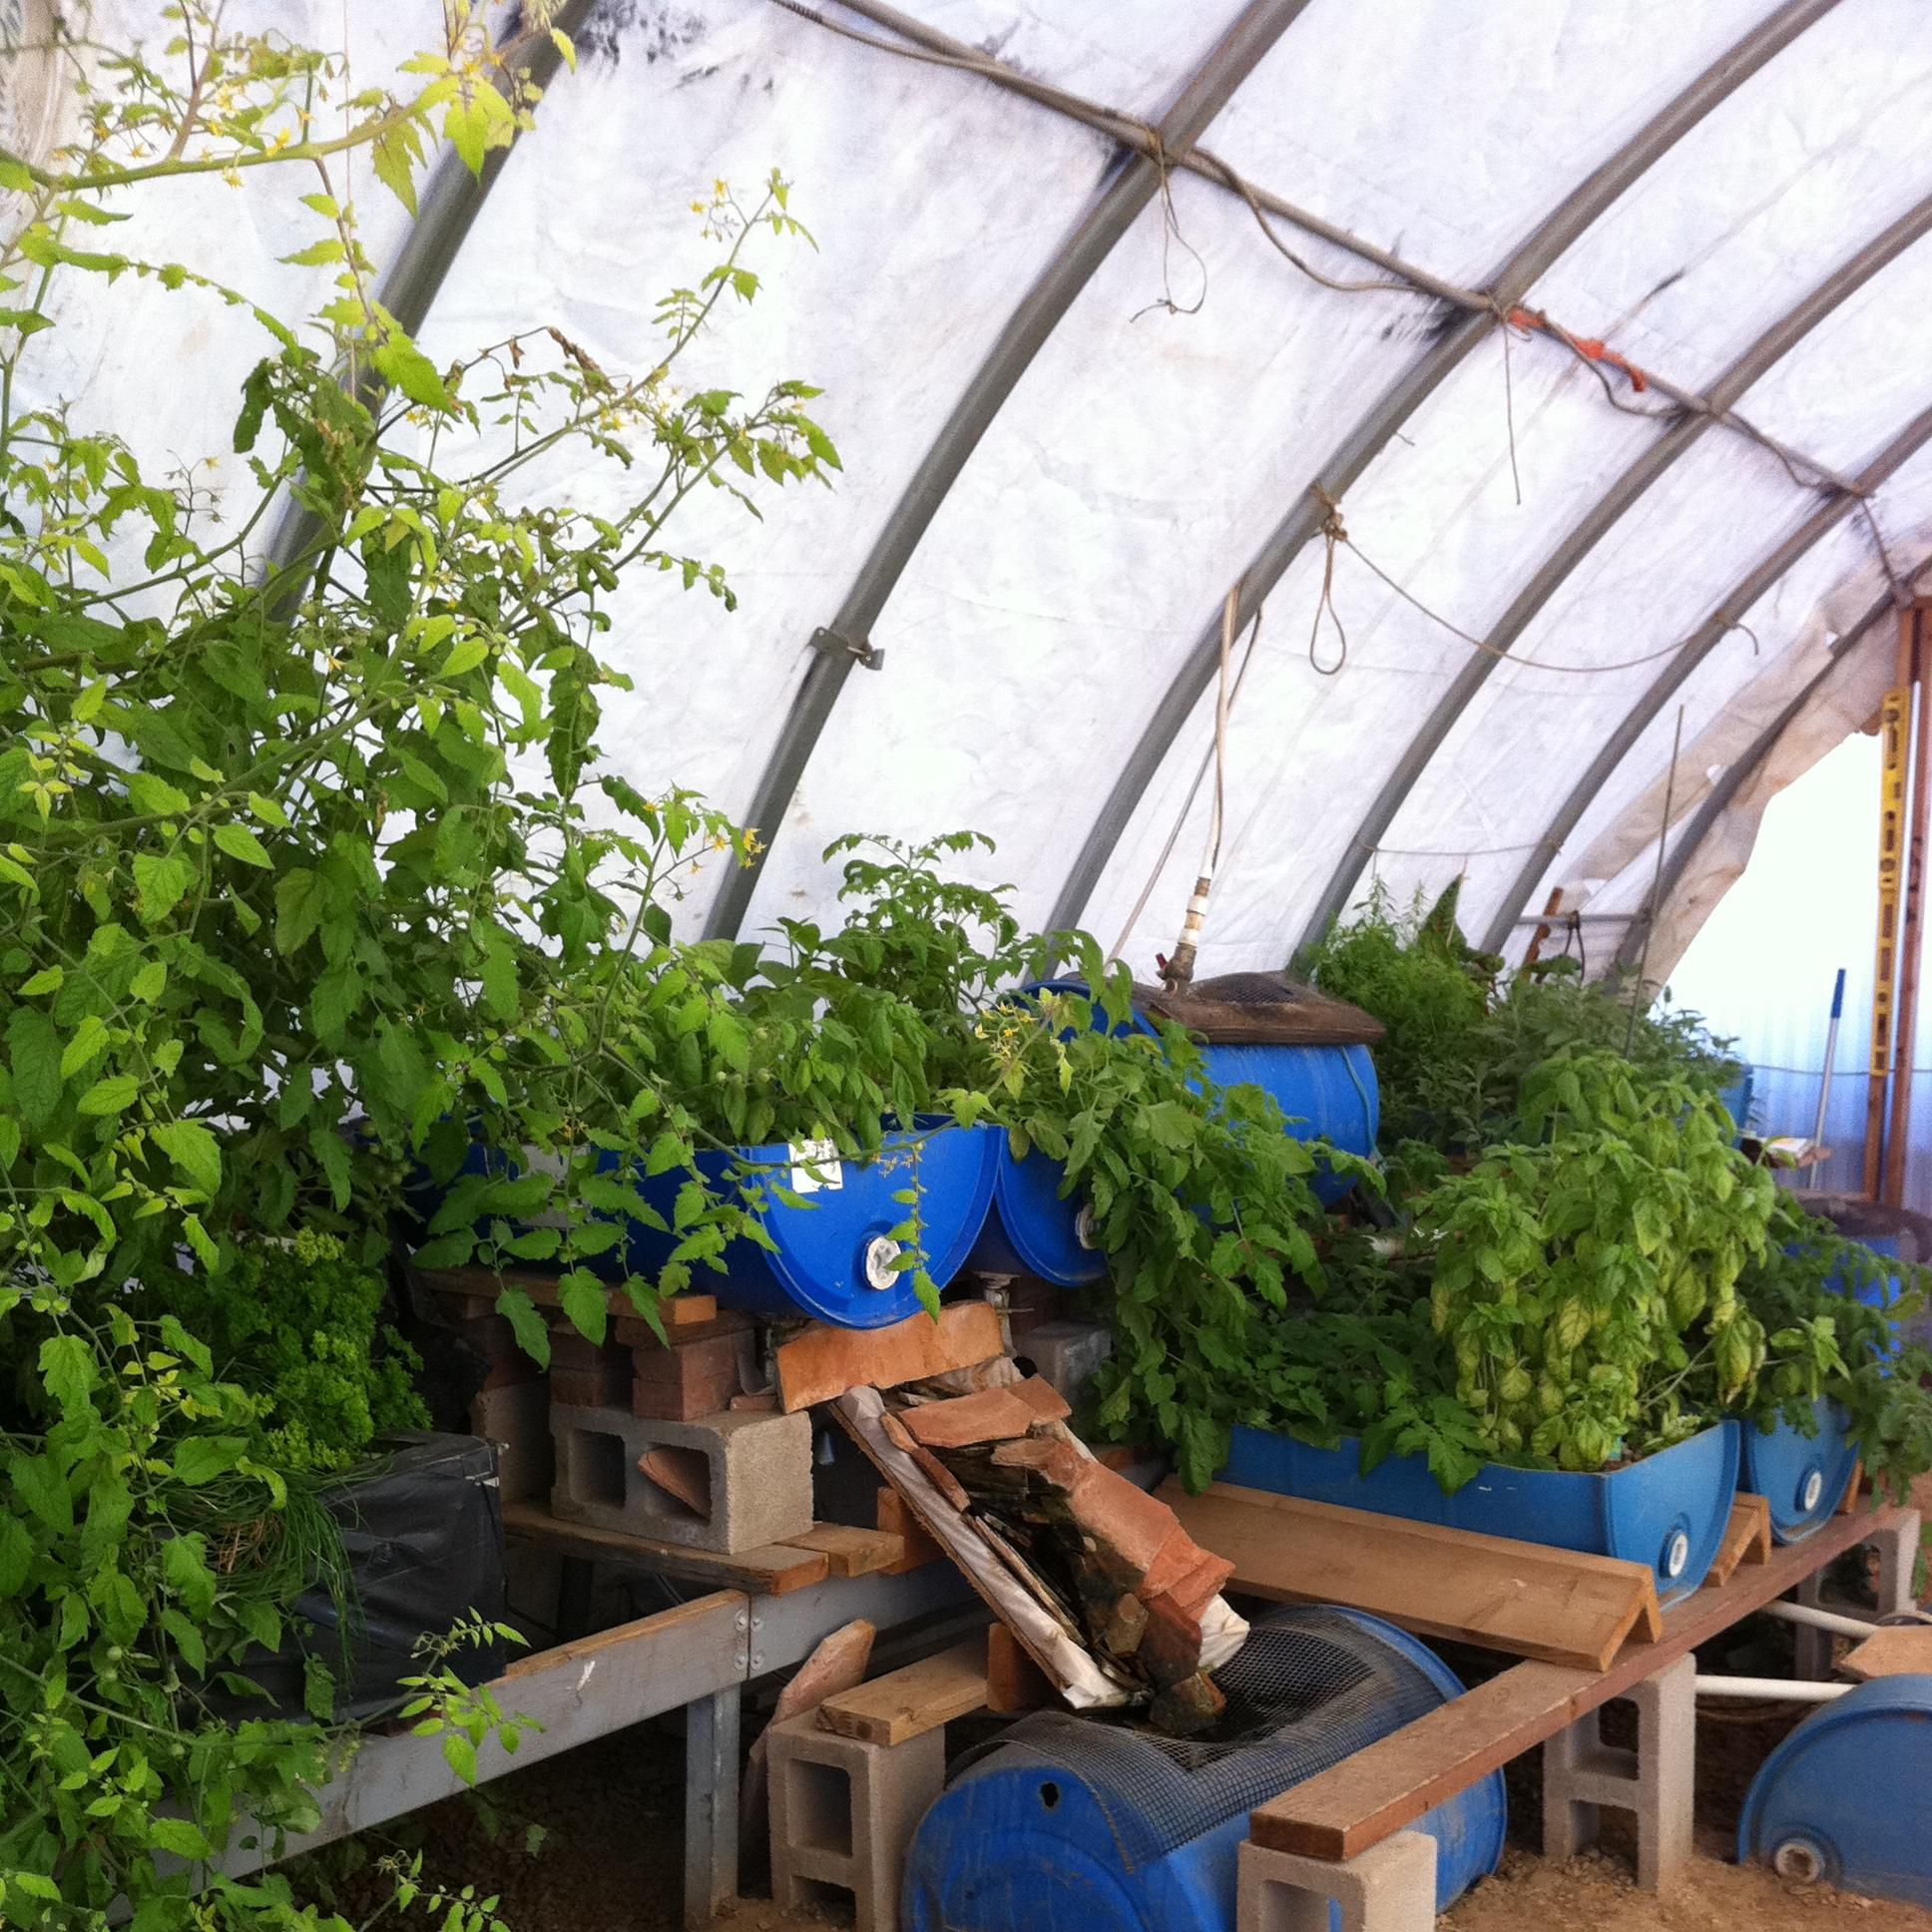 Can Aquaponics be Financially Viable? Seven Years after we First Asked – Do We Know Now?